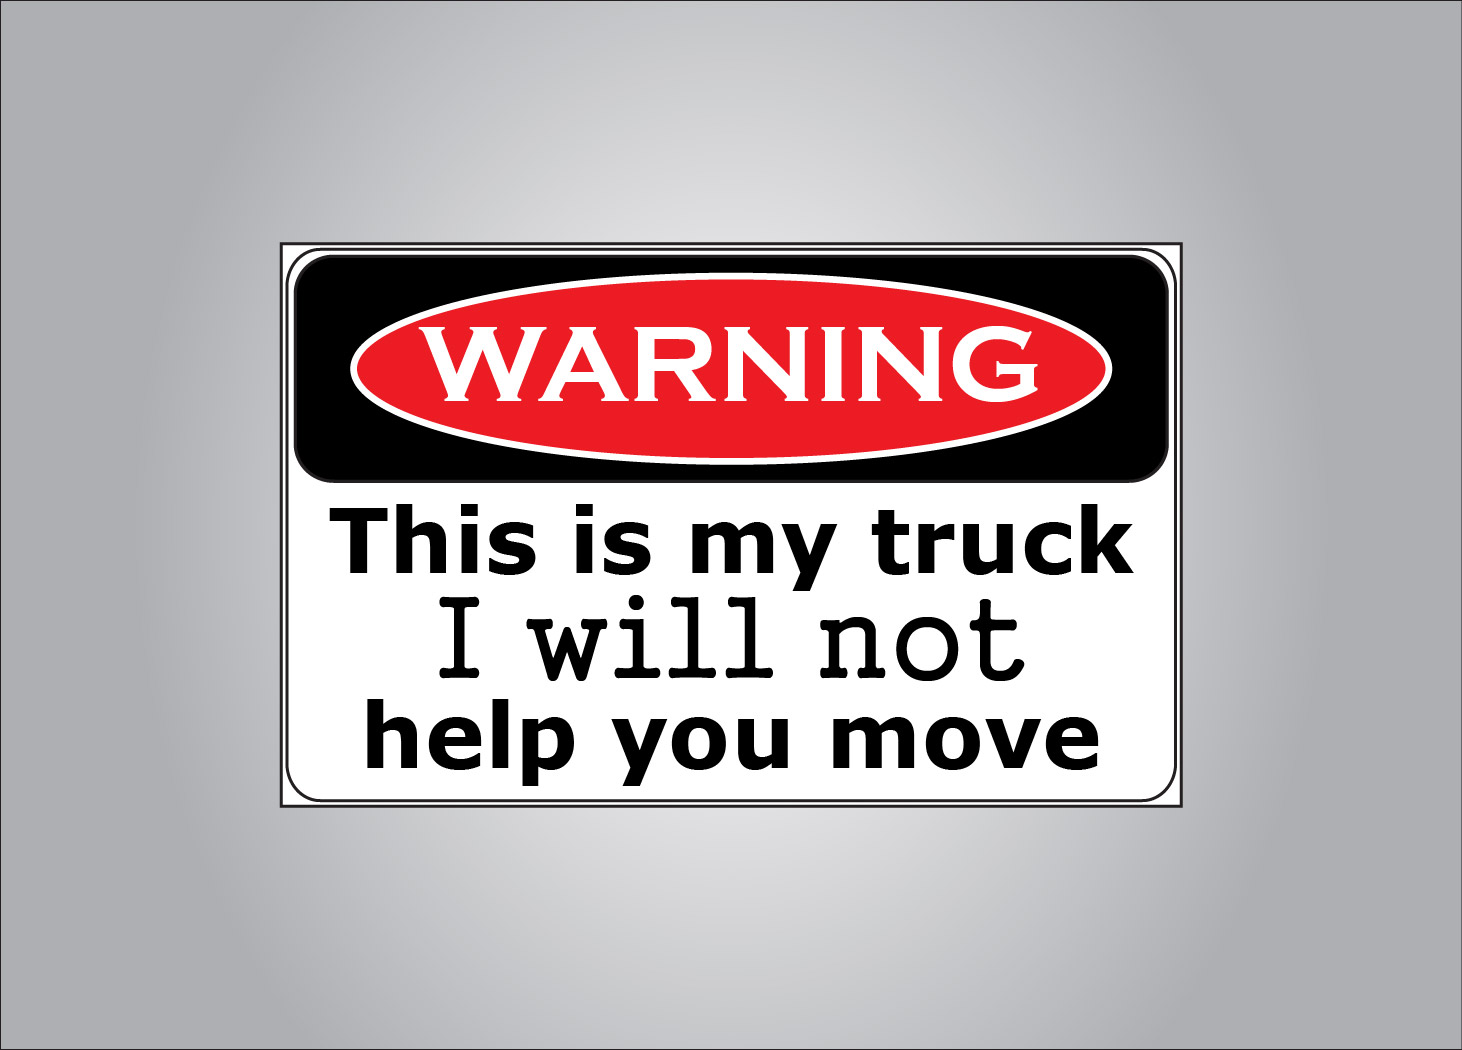 Perfect sticker for your truck if you don't like to help people move.